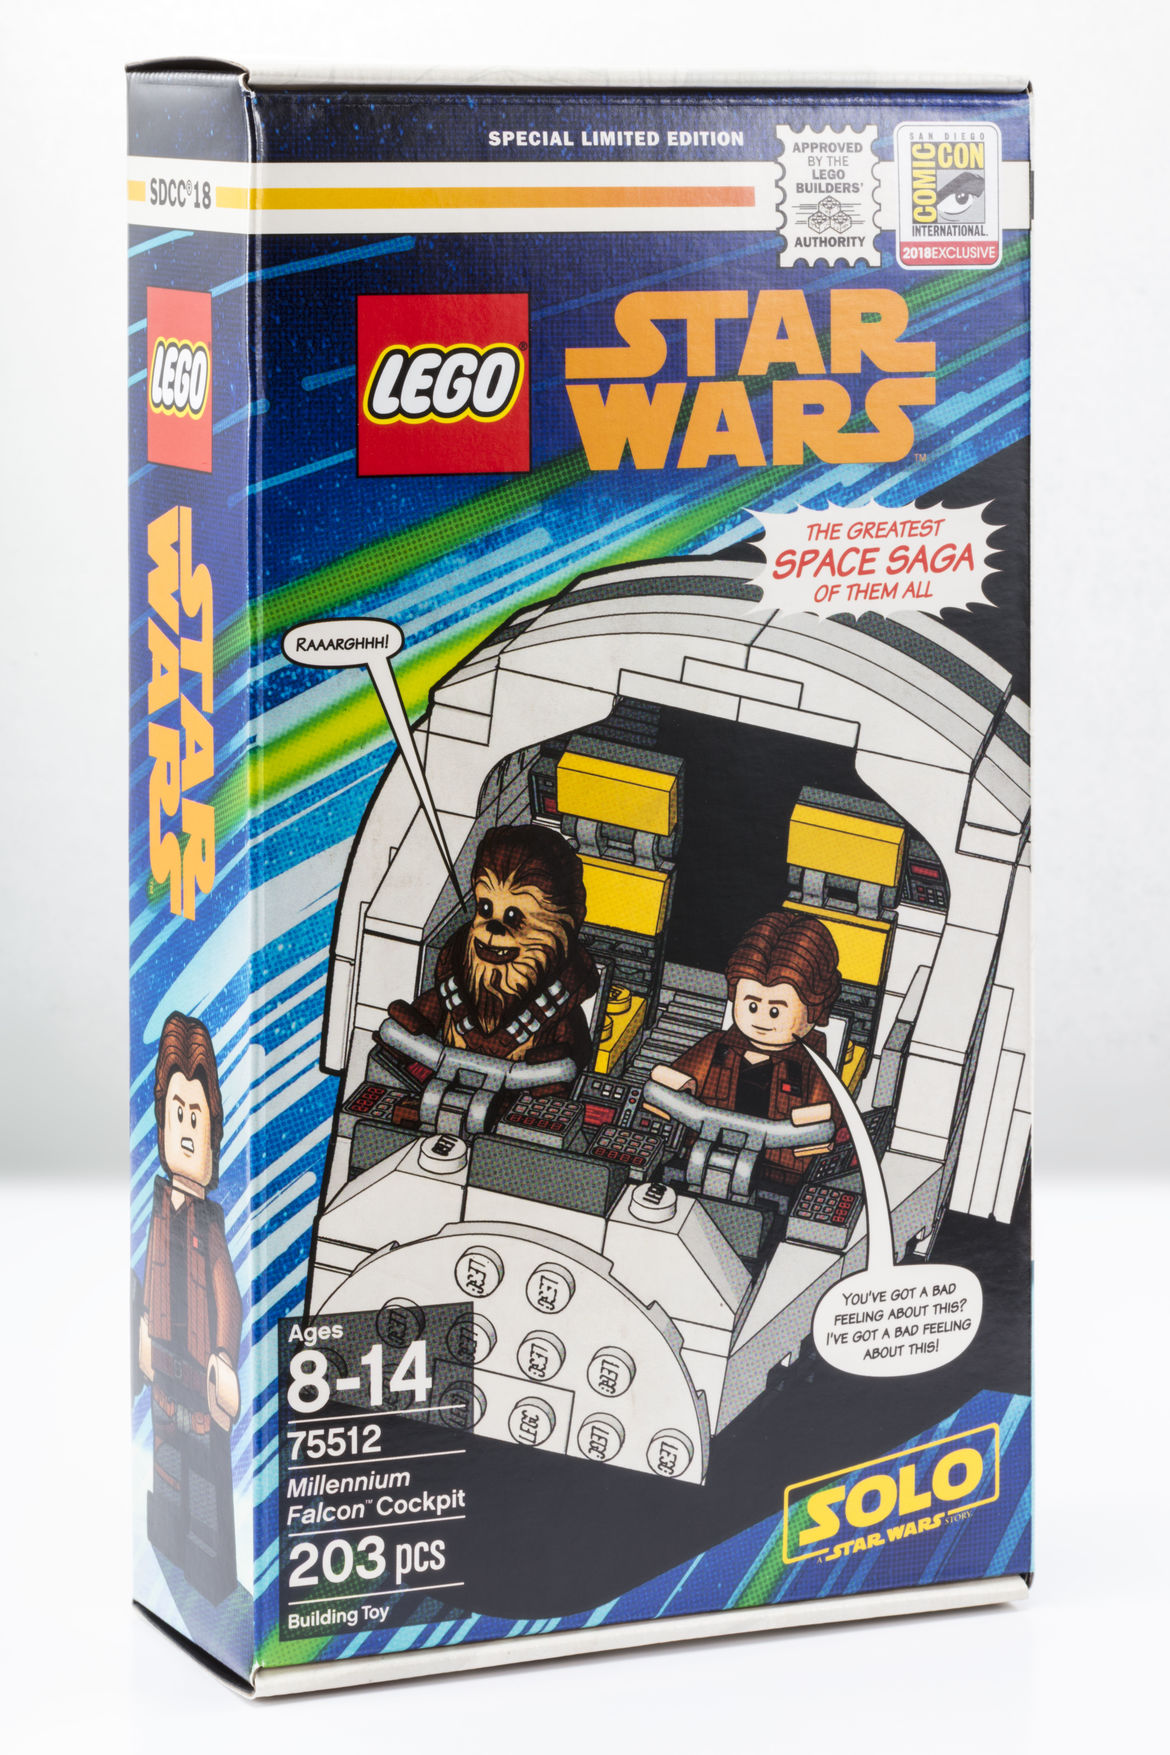 LEGO's SDCC Exclusive Millennium Falcon cockpit from Solo: A Star